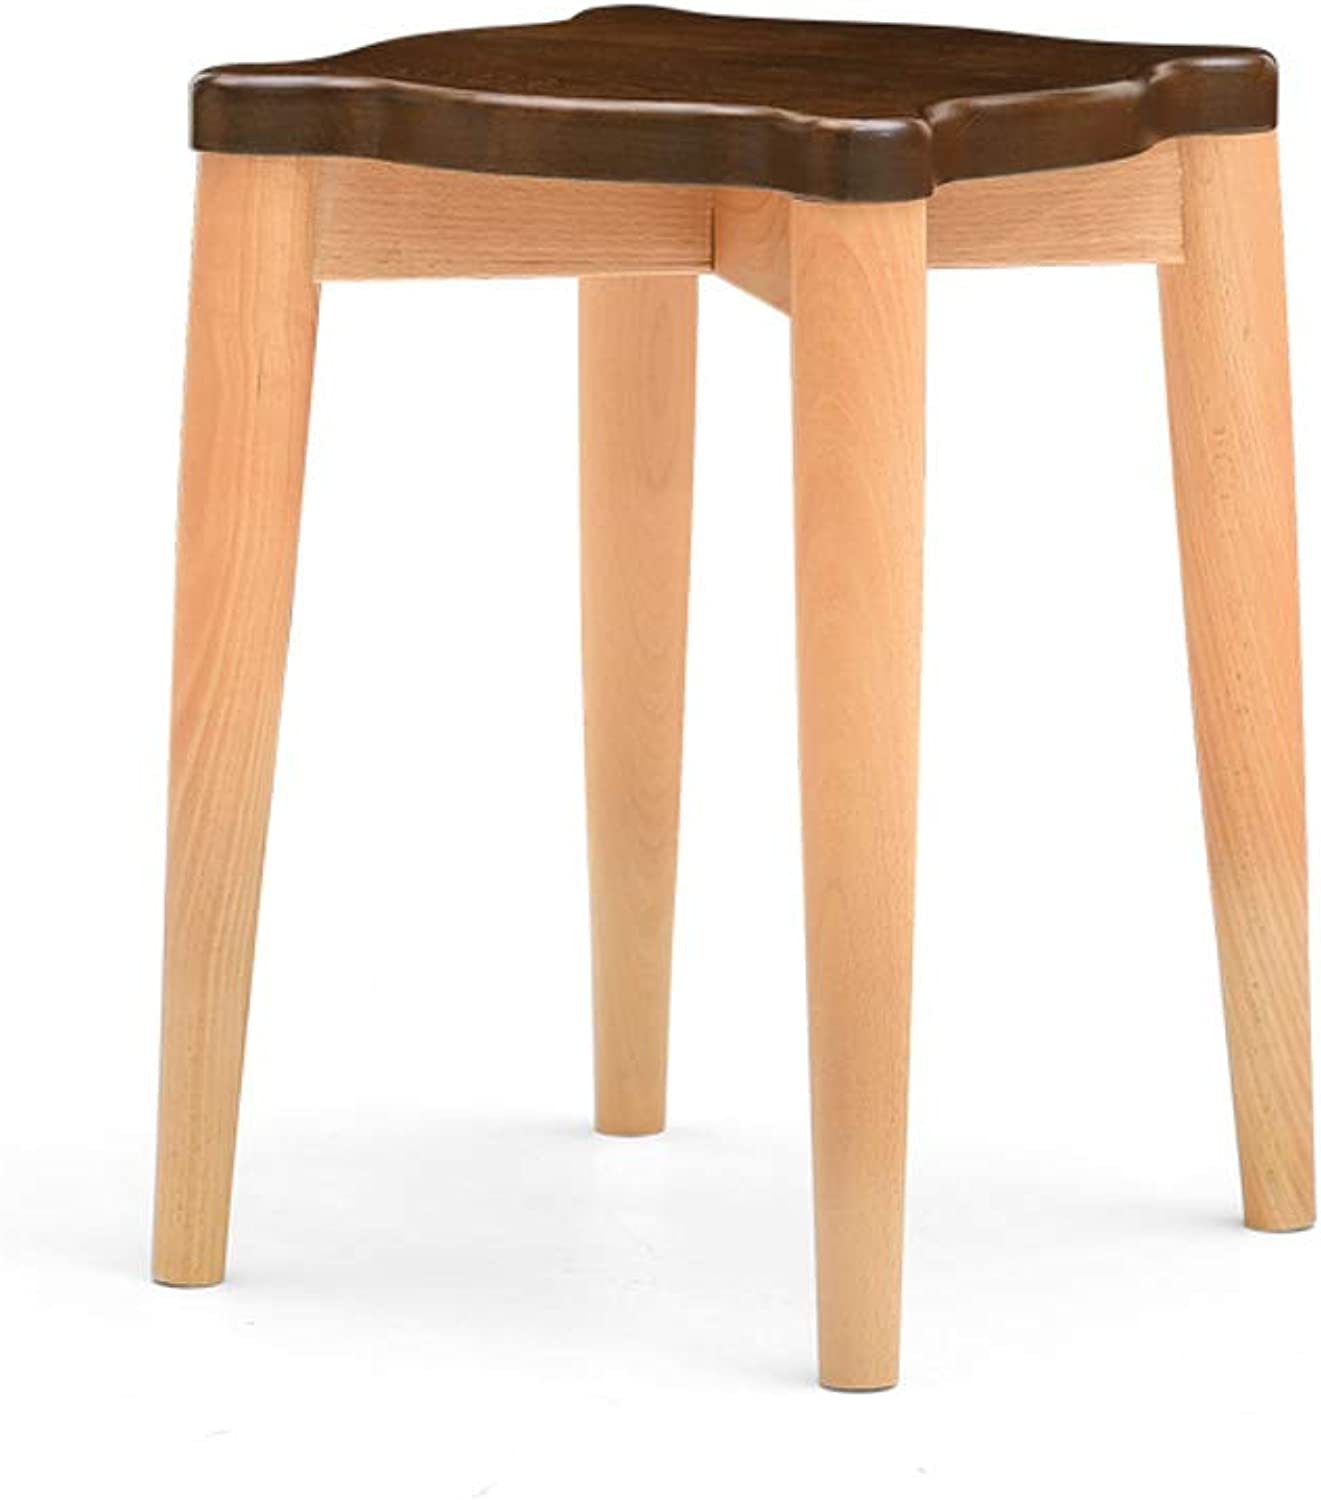 GSHWJS Fashion Dressing Stool Nordic Home Bench Simple Solid Wood Stool Creative Living Room Dining Stool 30x30x44cm Put The Stool